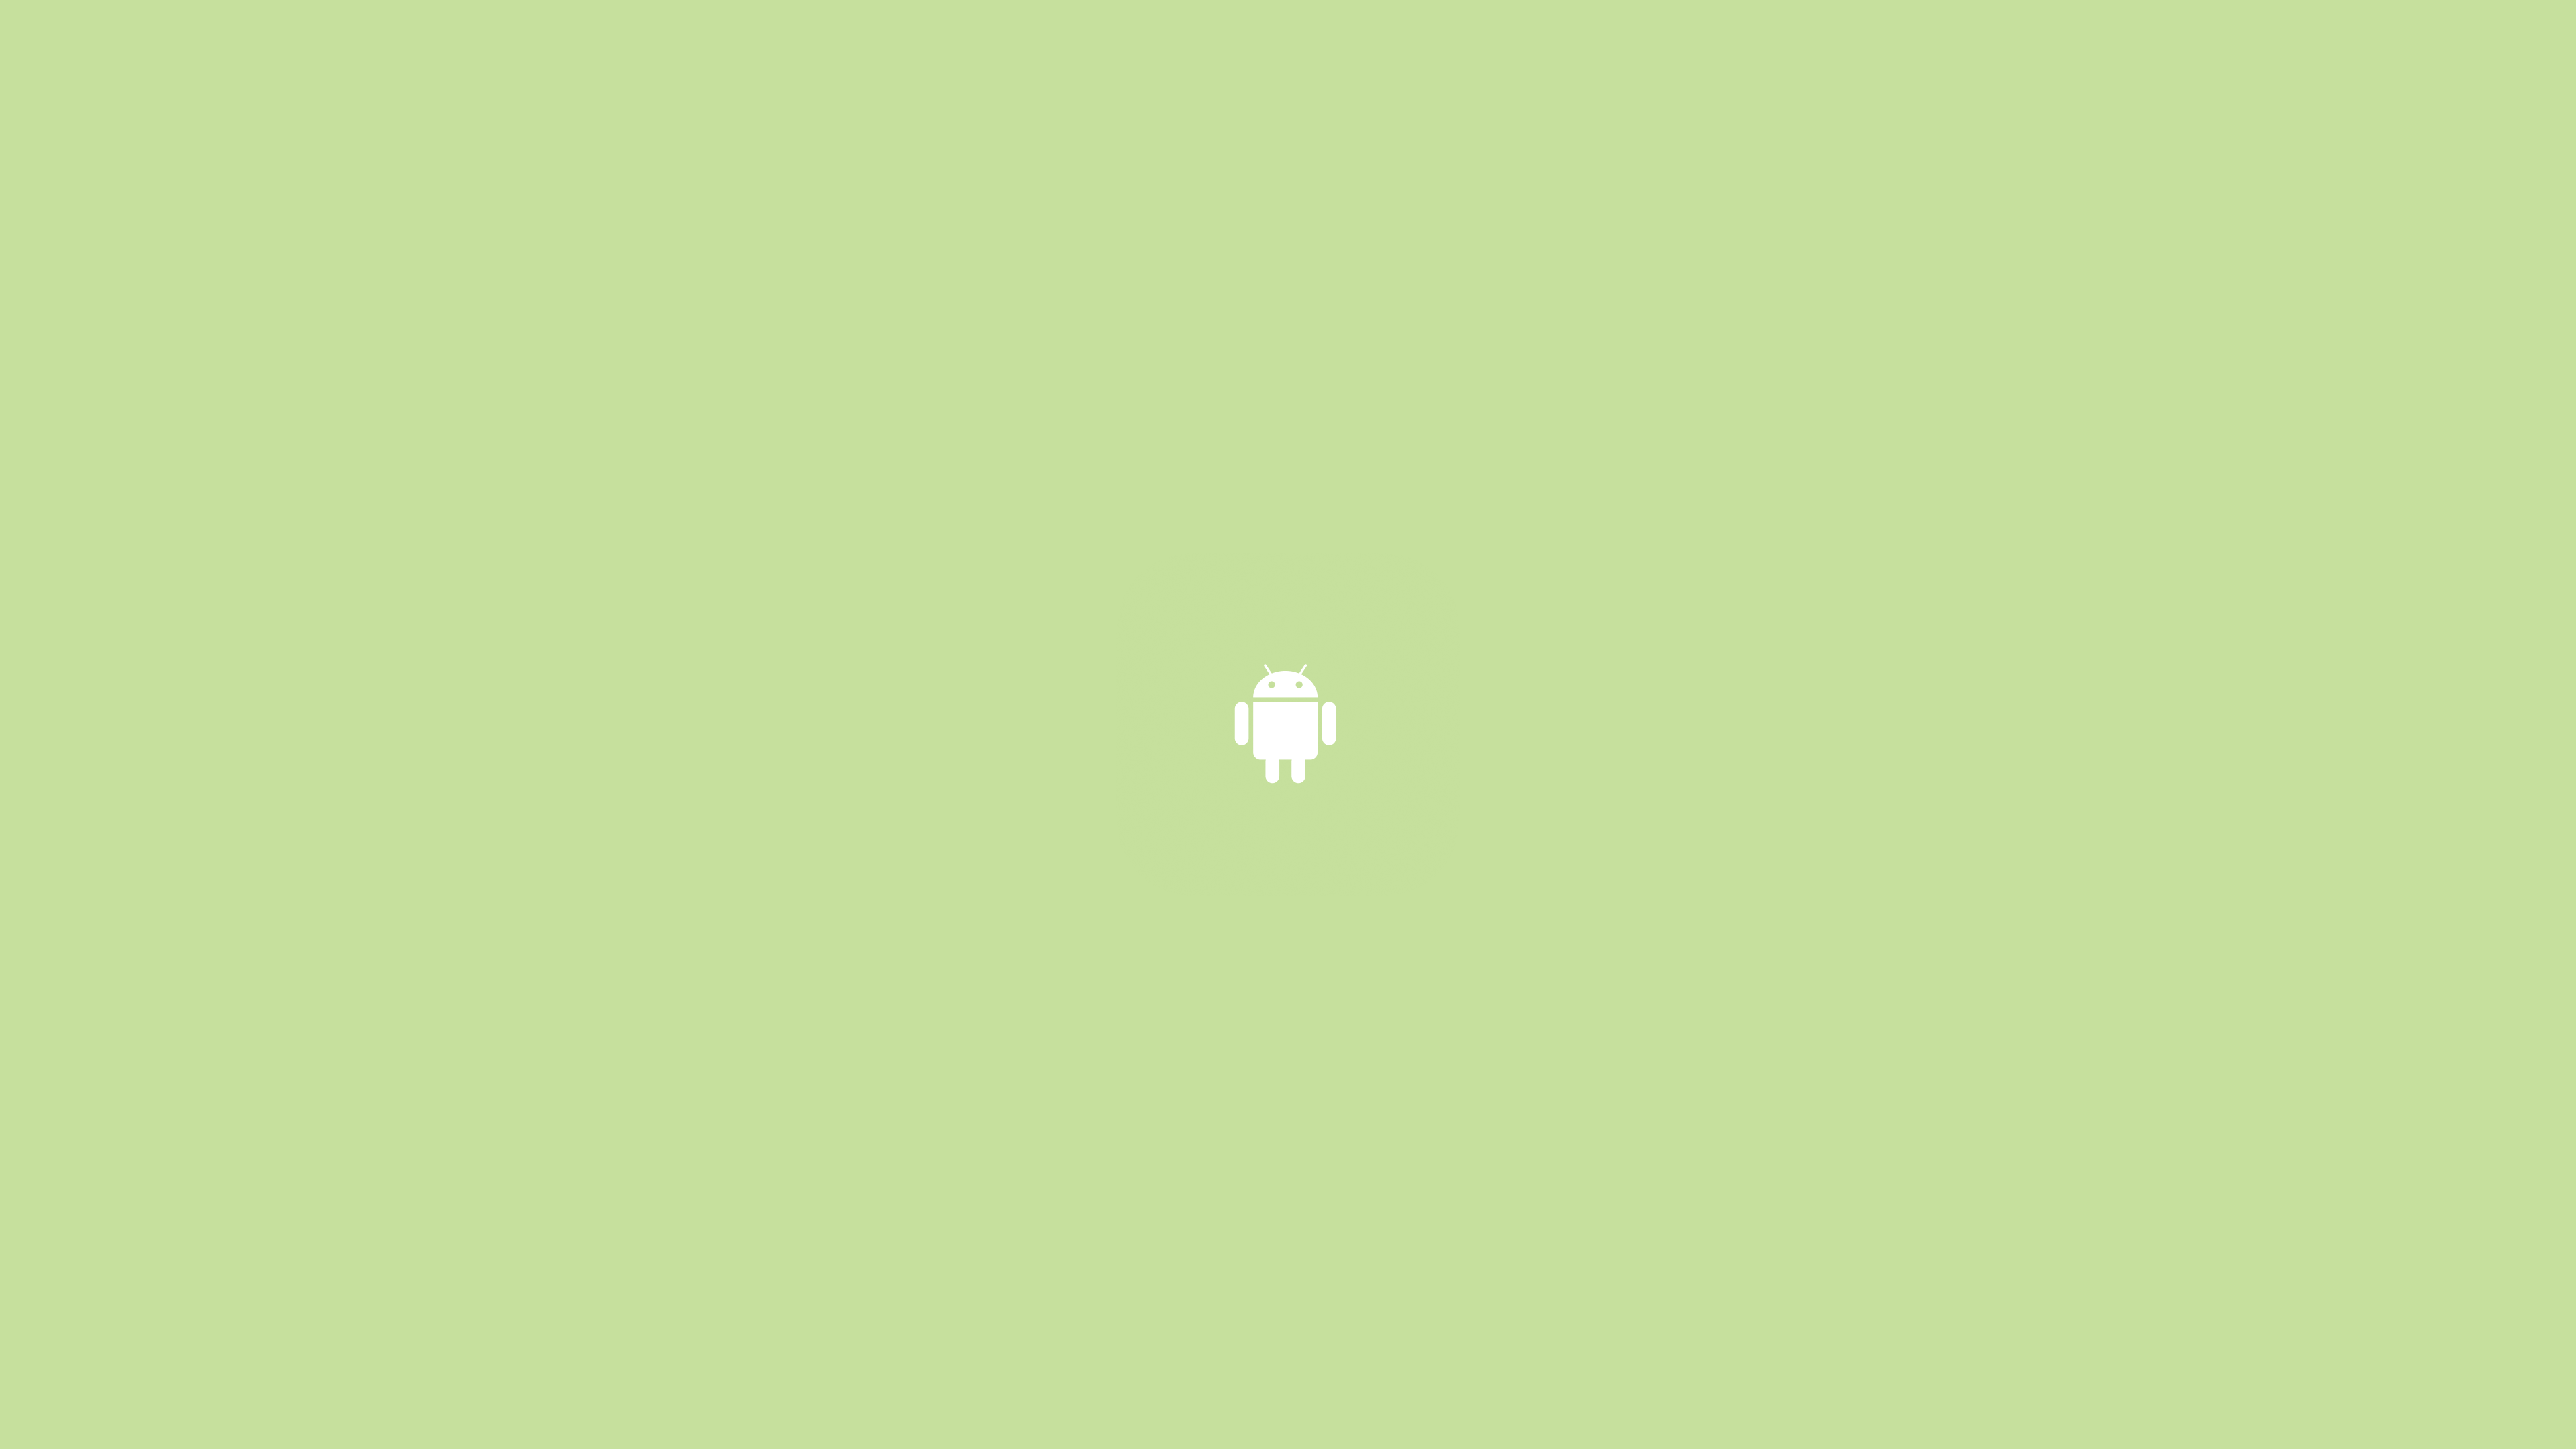 Minimal Page 6 MNML Wallpapers